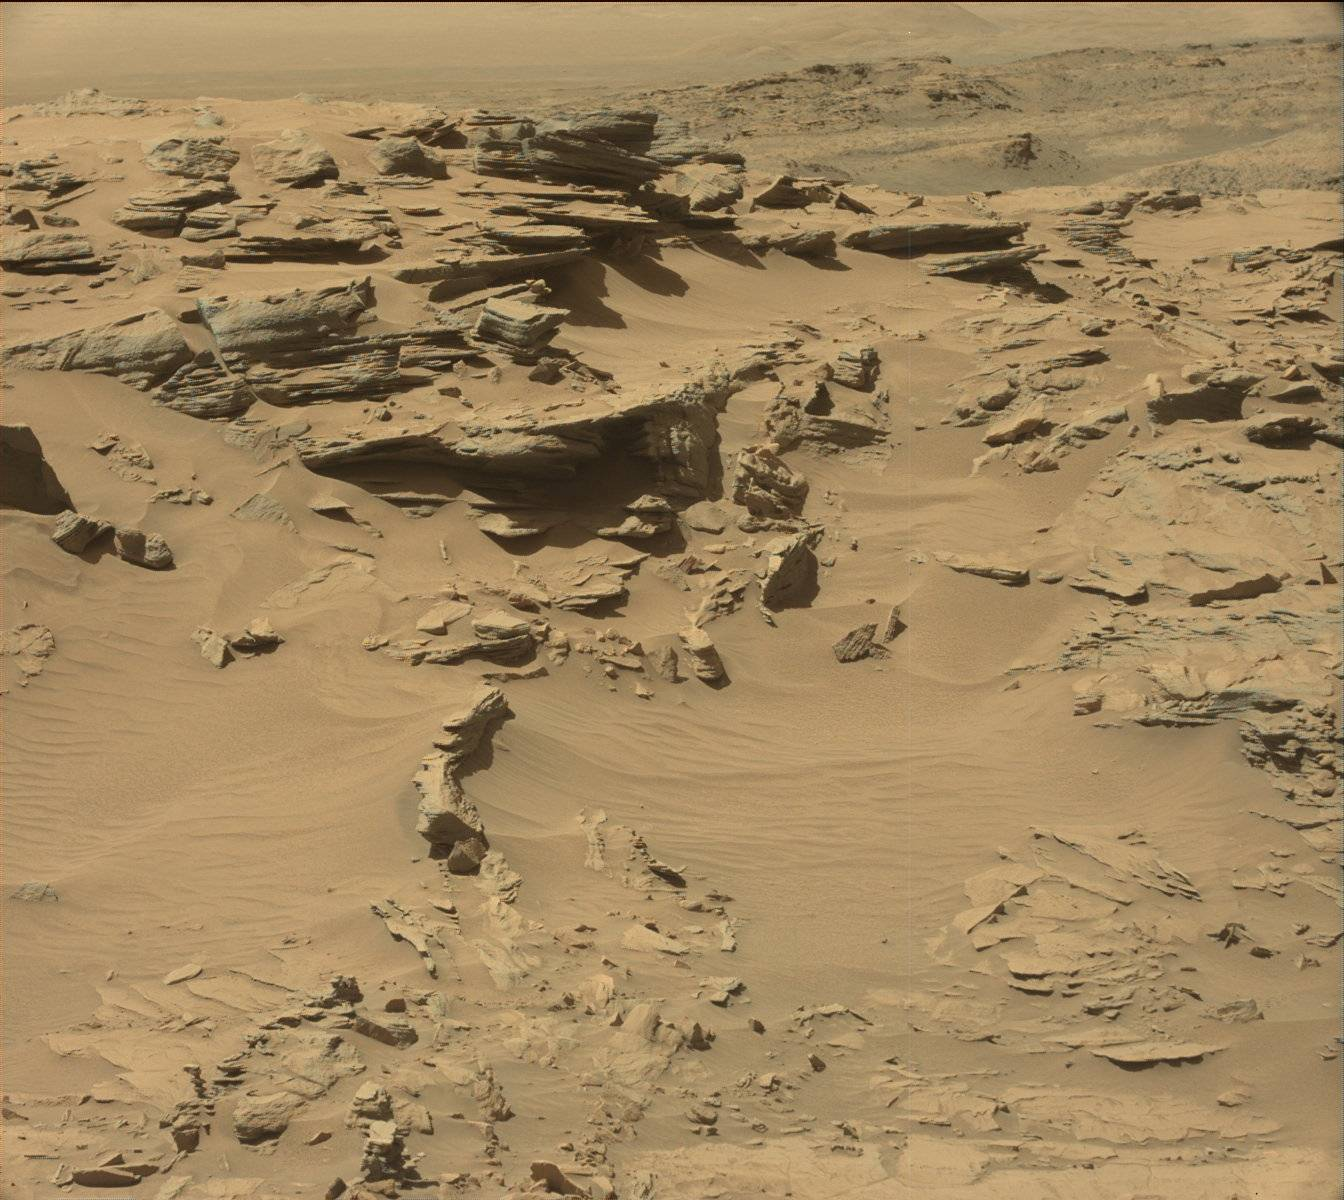 Nasa's Mars rover Curiosity acquired this image using its Mast Camera (Mastcam) on Sol 1296